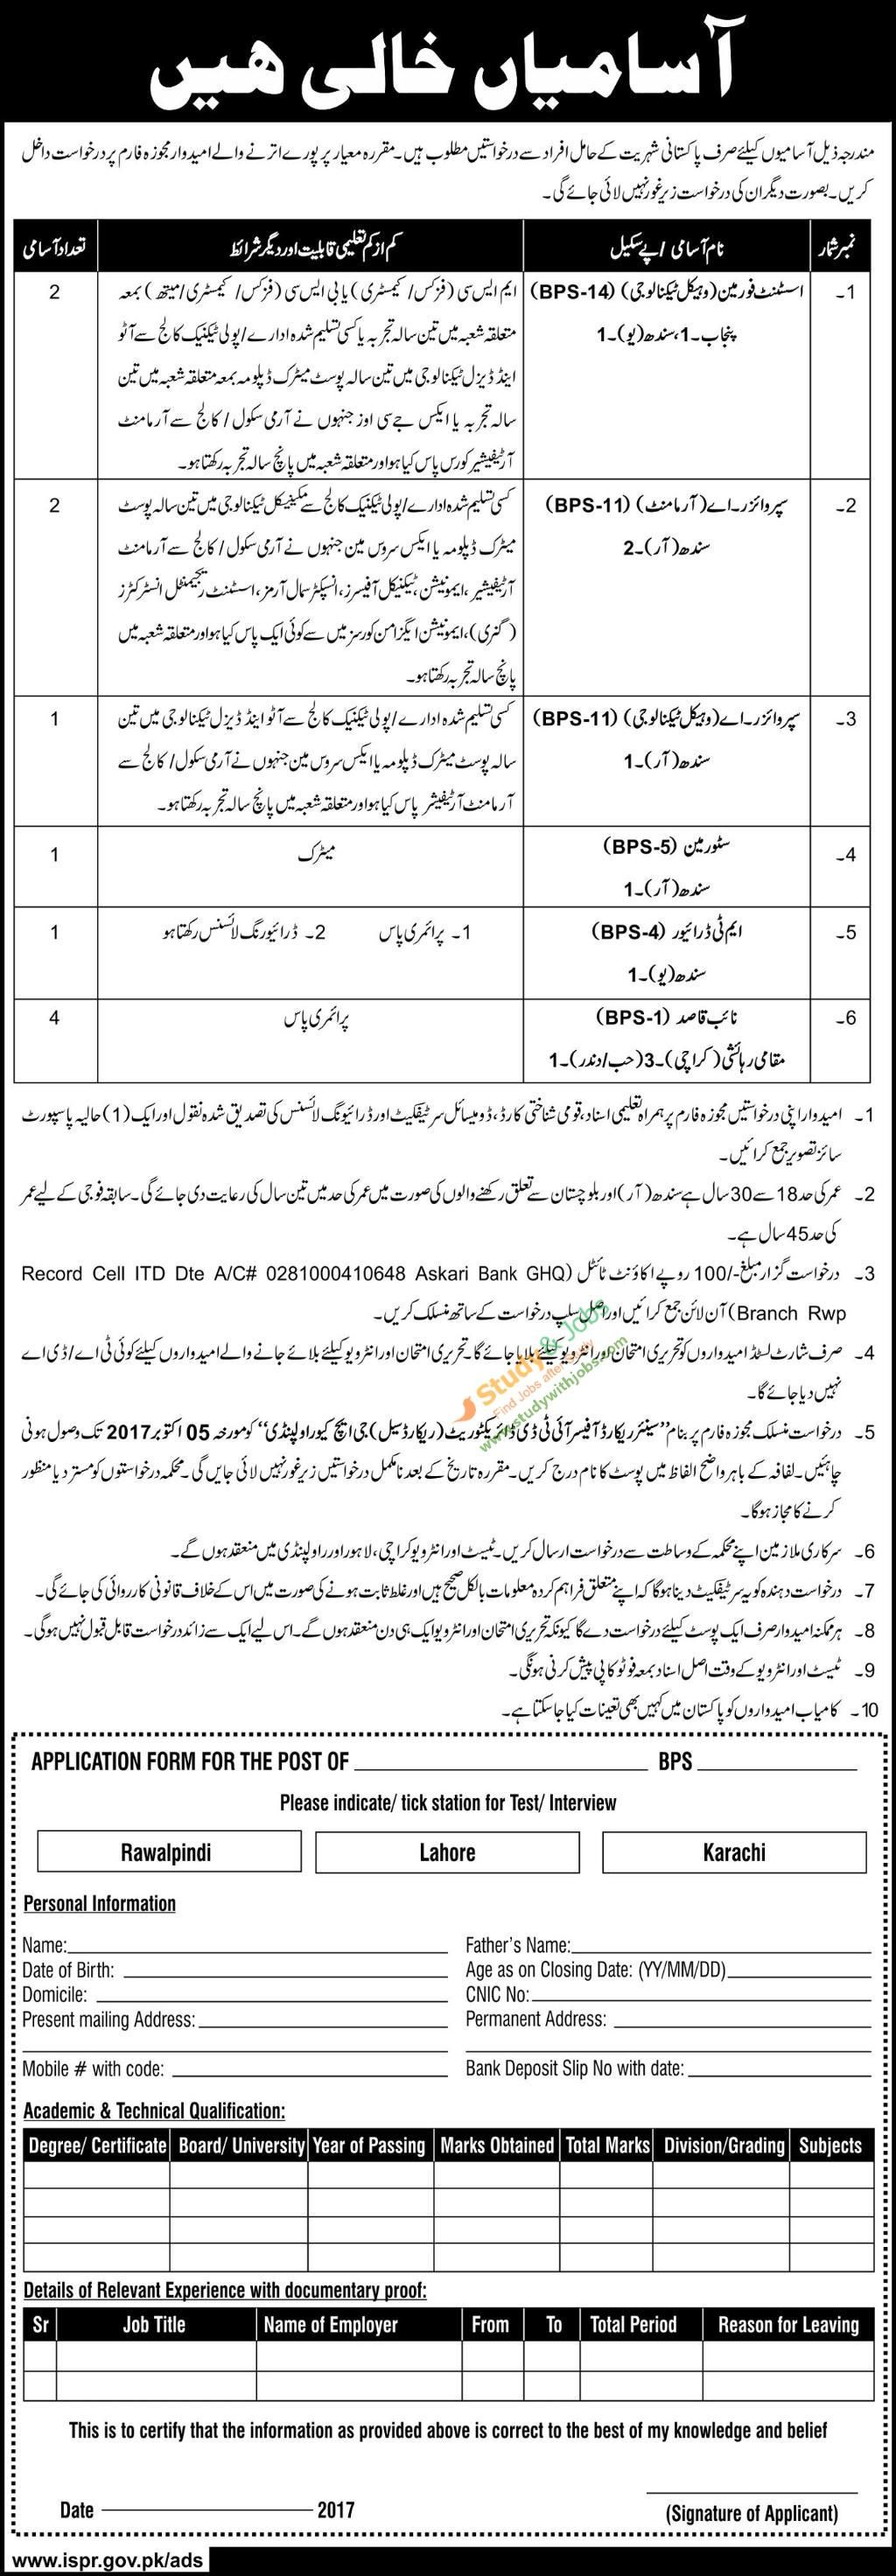 Government Jobs in ISPR Online Application Form 21st September 2017 on government training, driver application form, government job vacancies, doctor application form, medical application form, government job application process, teaching application form, health care application form, government employment, government newsletter, government order form, bank application form, government job openings, finance application form, government events, government benefits, security application form, government job application cover letter, government articles, business application form,